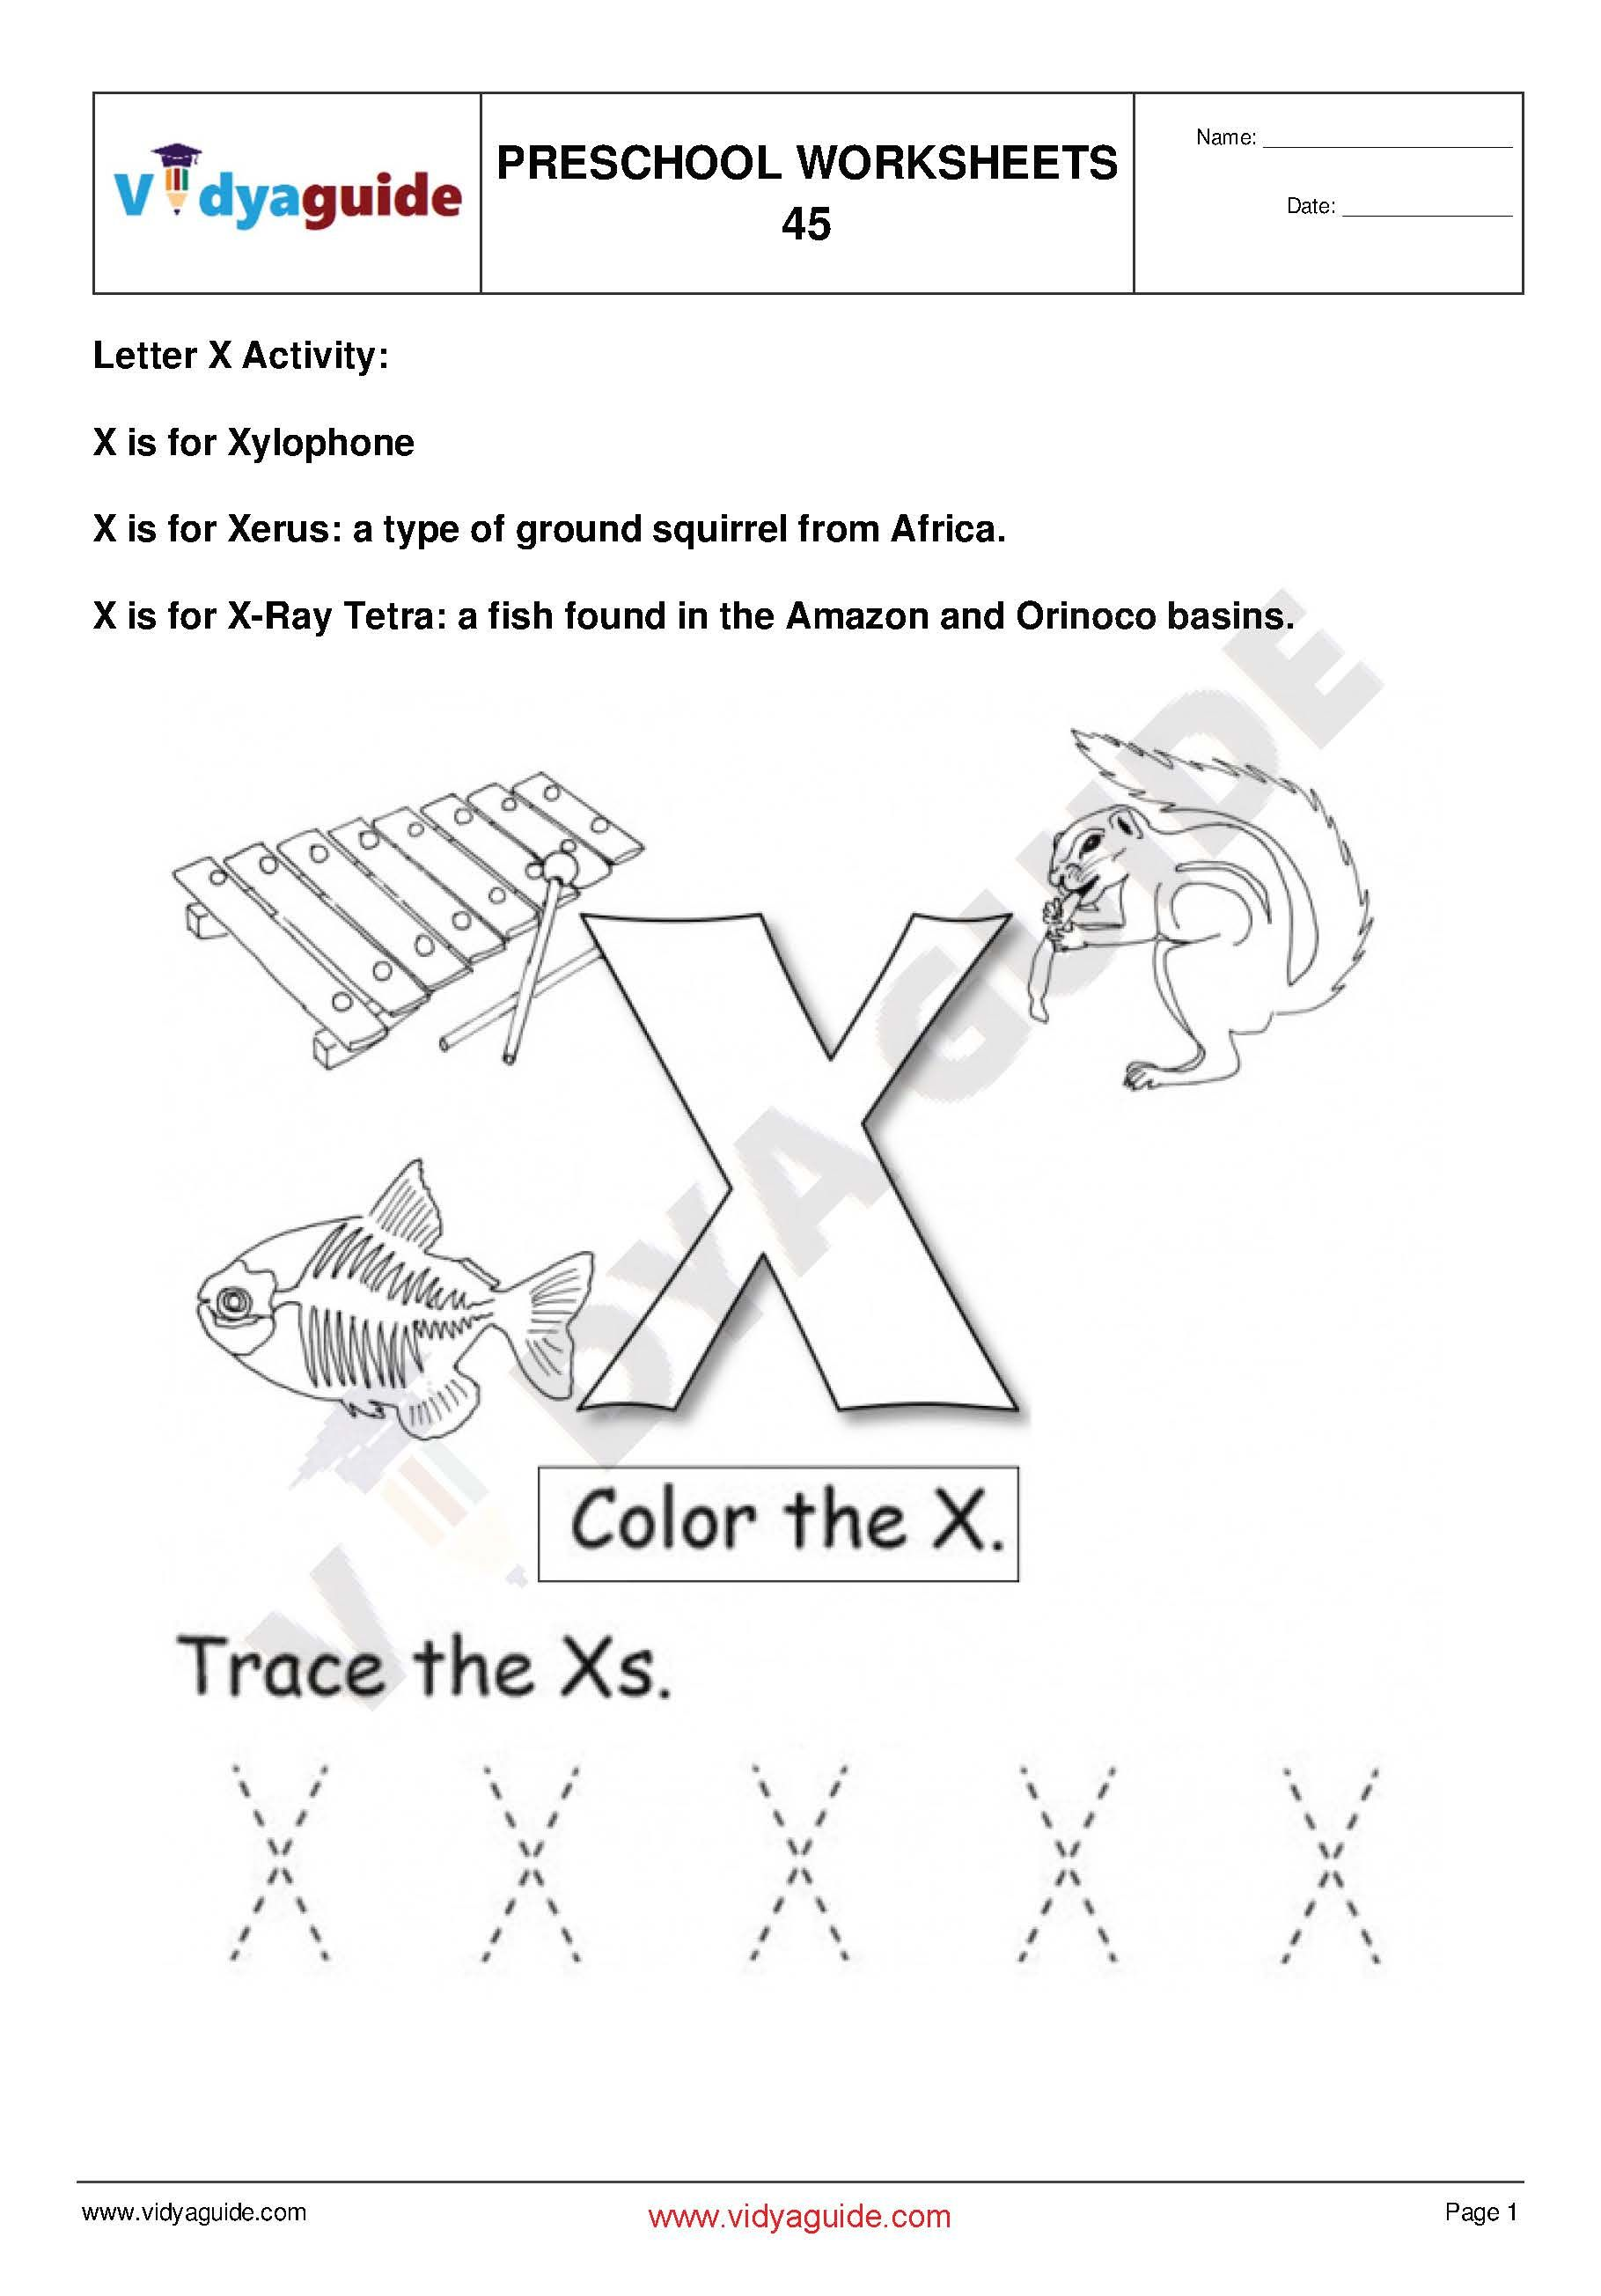 Preschool Worksheet Set 10. Download 5 PDF printable